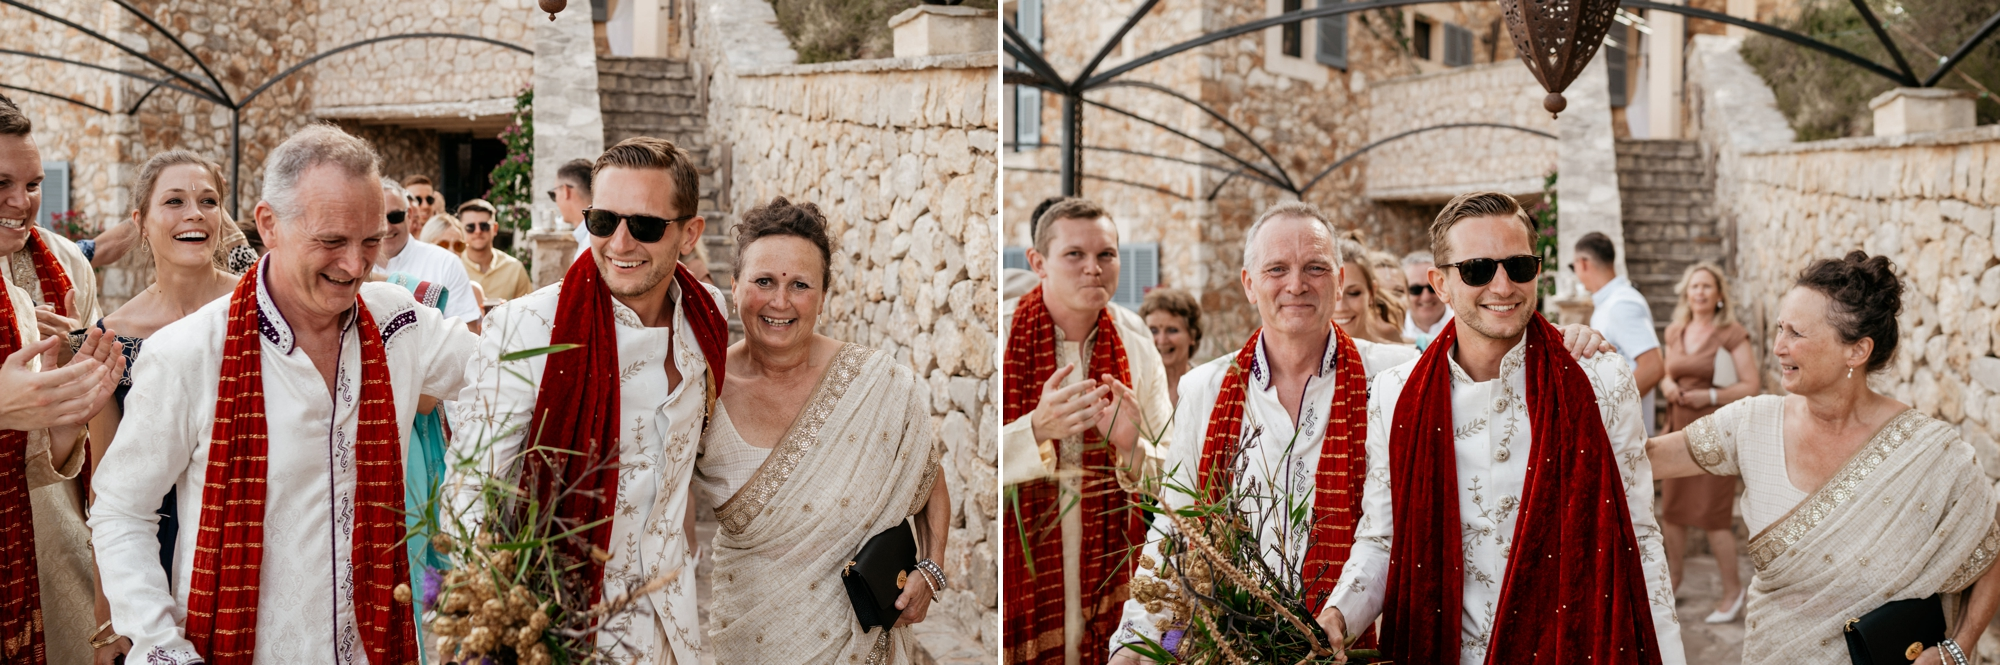 natural wedding photography mallorca boda hindu 0078 1